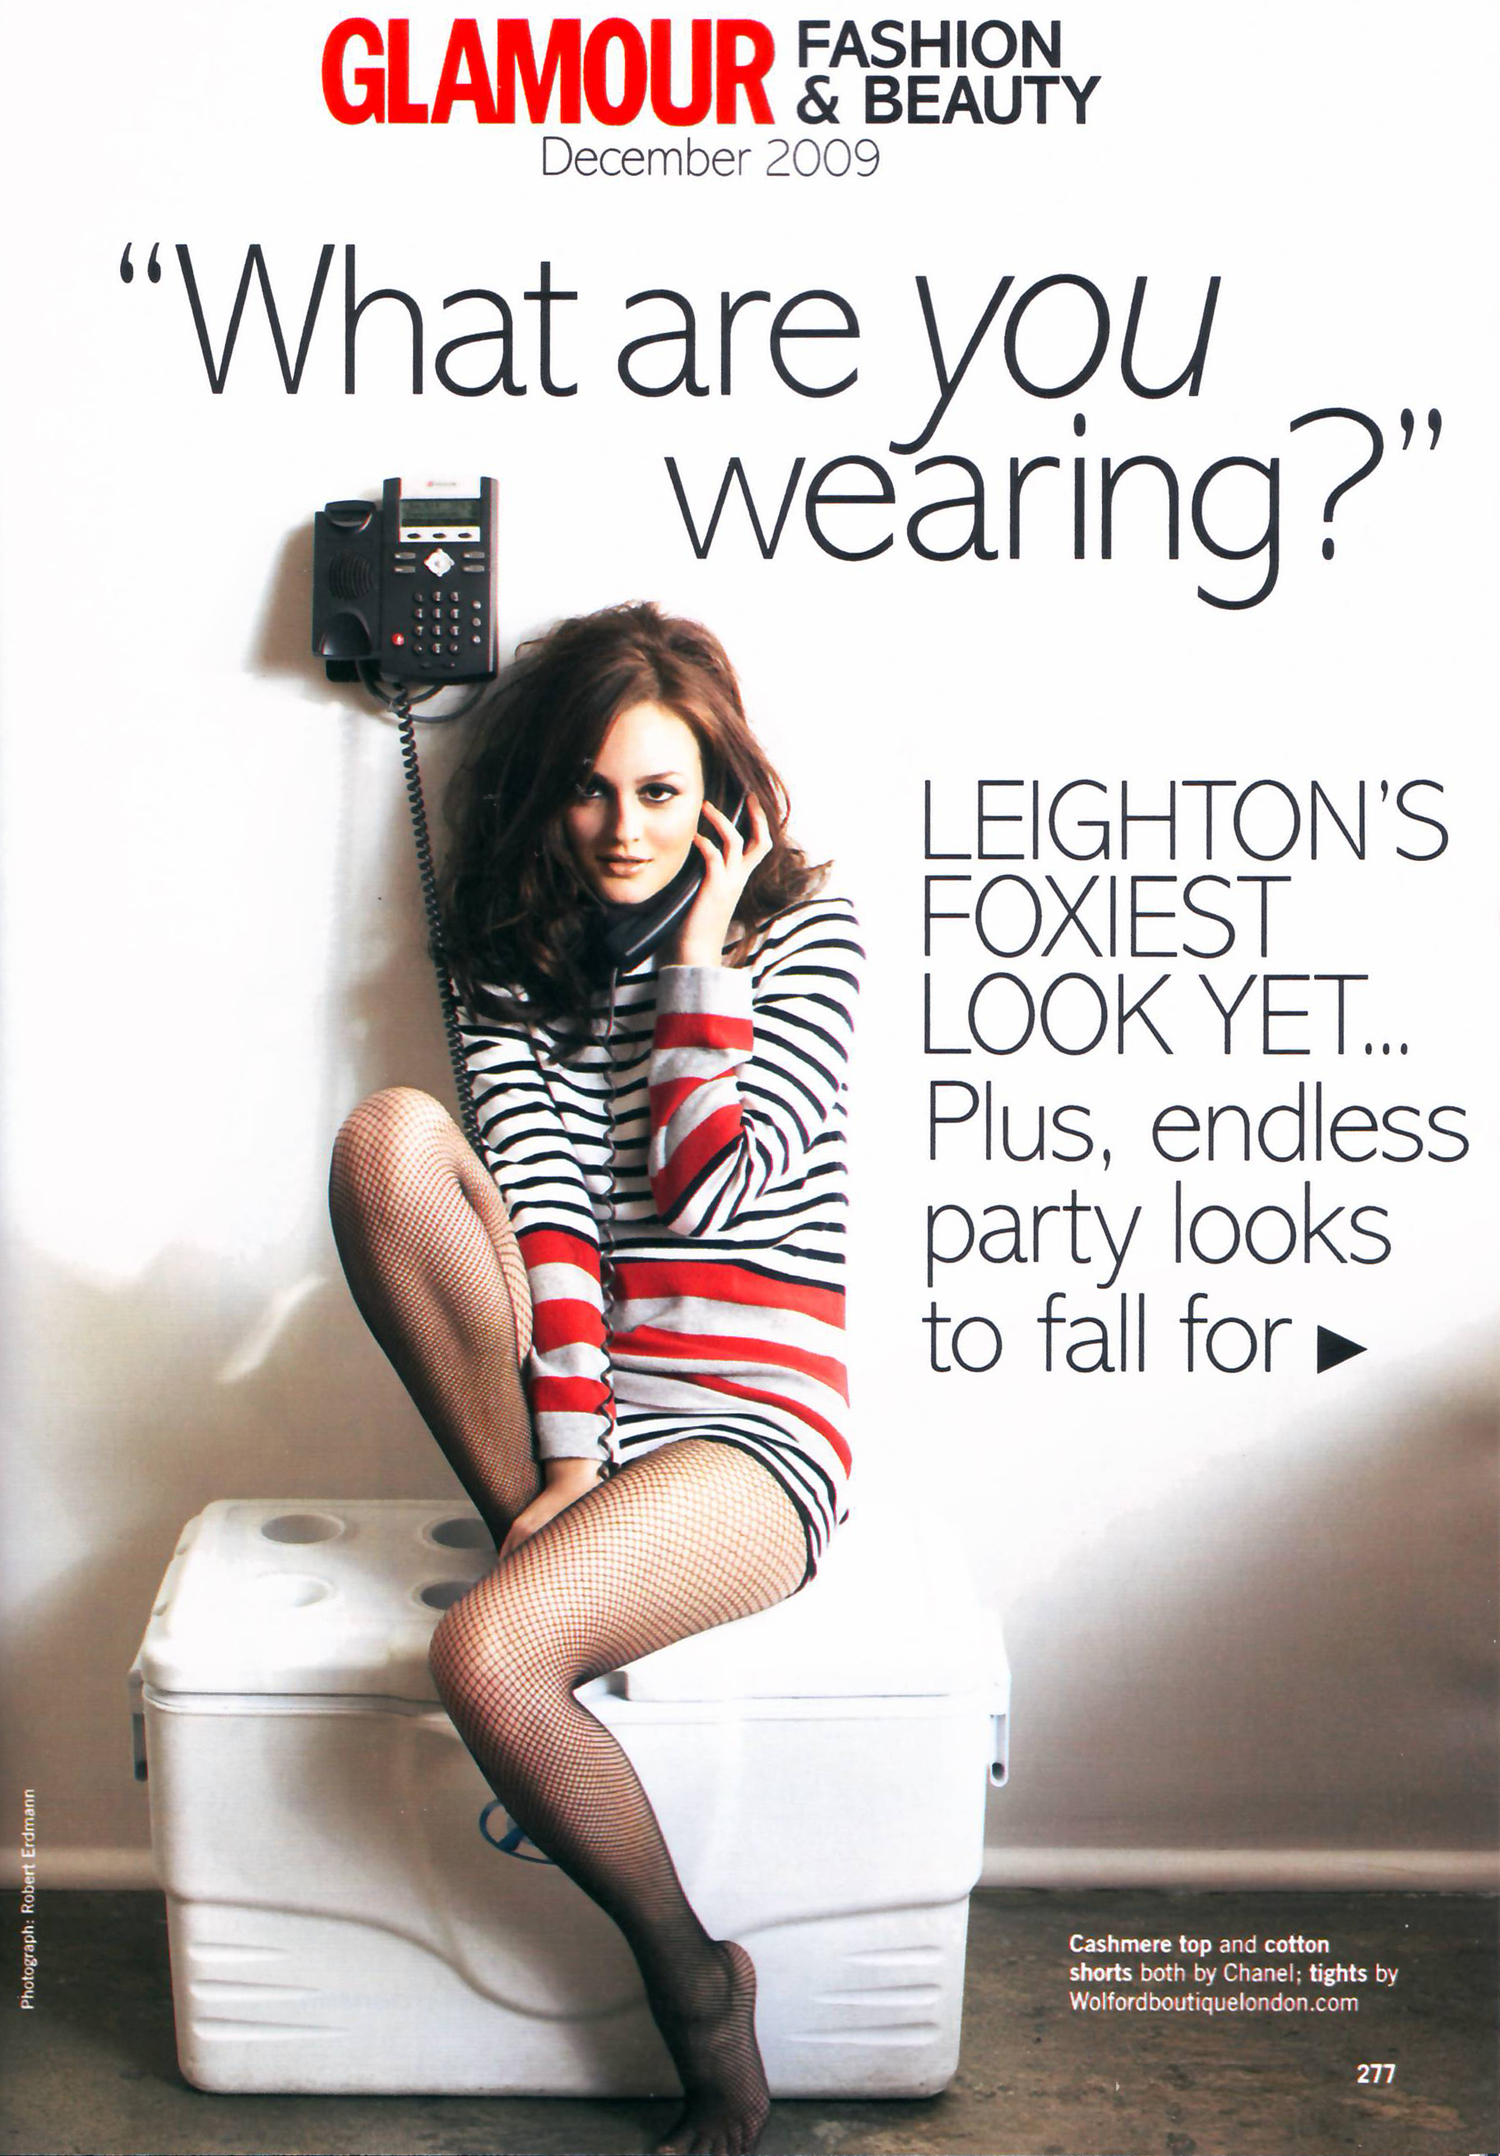 http://images2.fanpop.com/image/photos/9000000/Glamour-December-2009-scan-leighton-meester-9042844-1500-2156.jpg